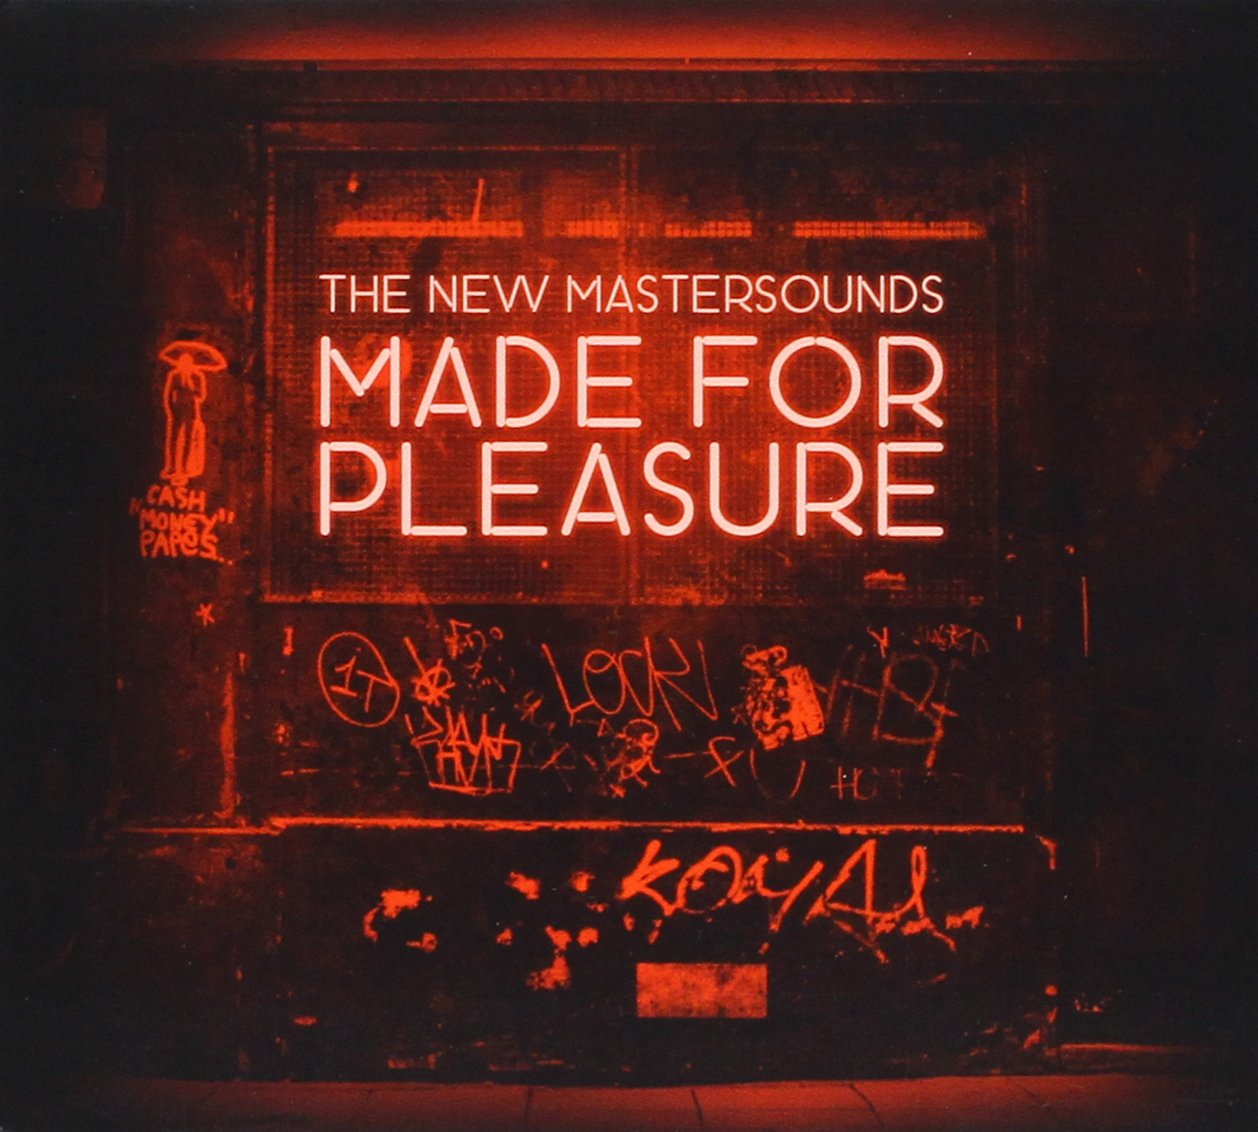 pleasure made for